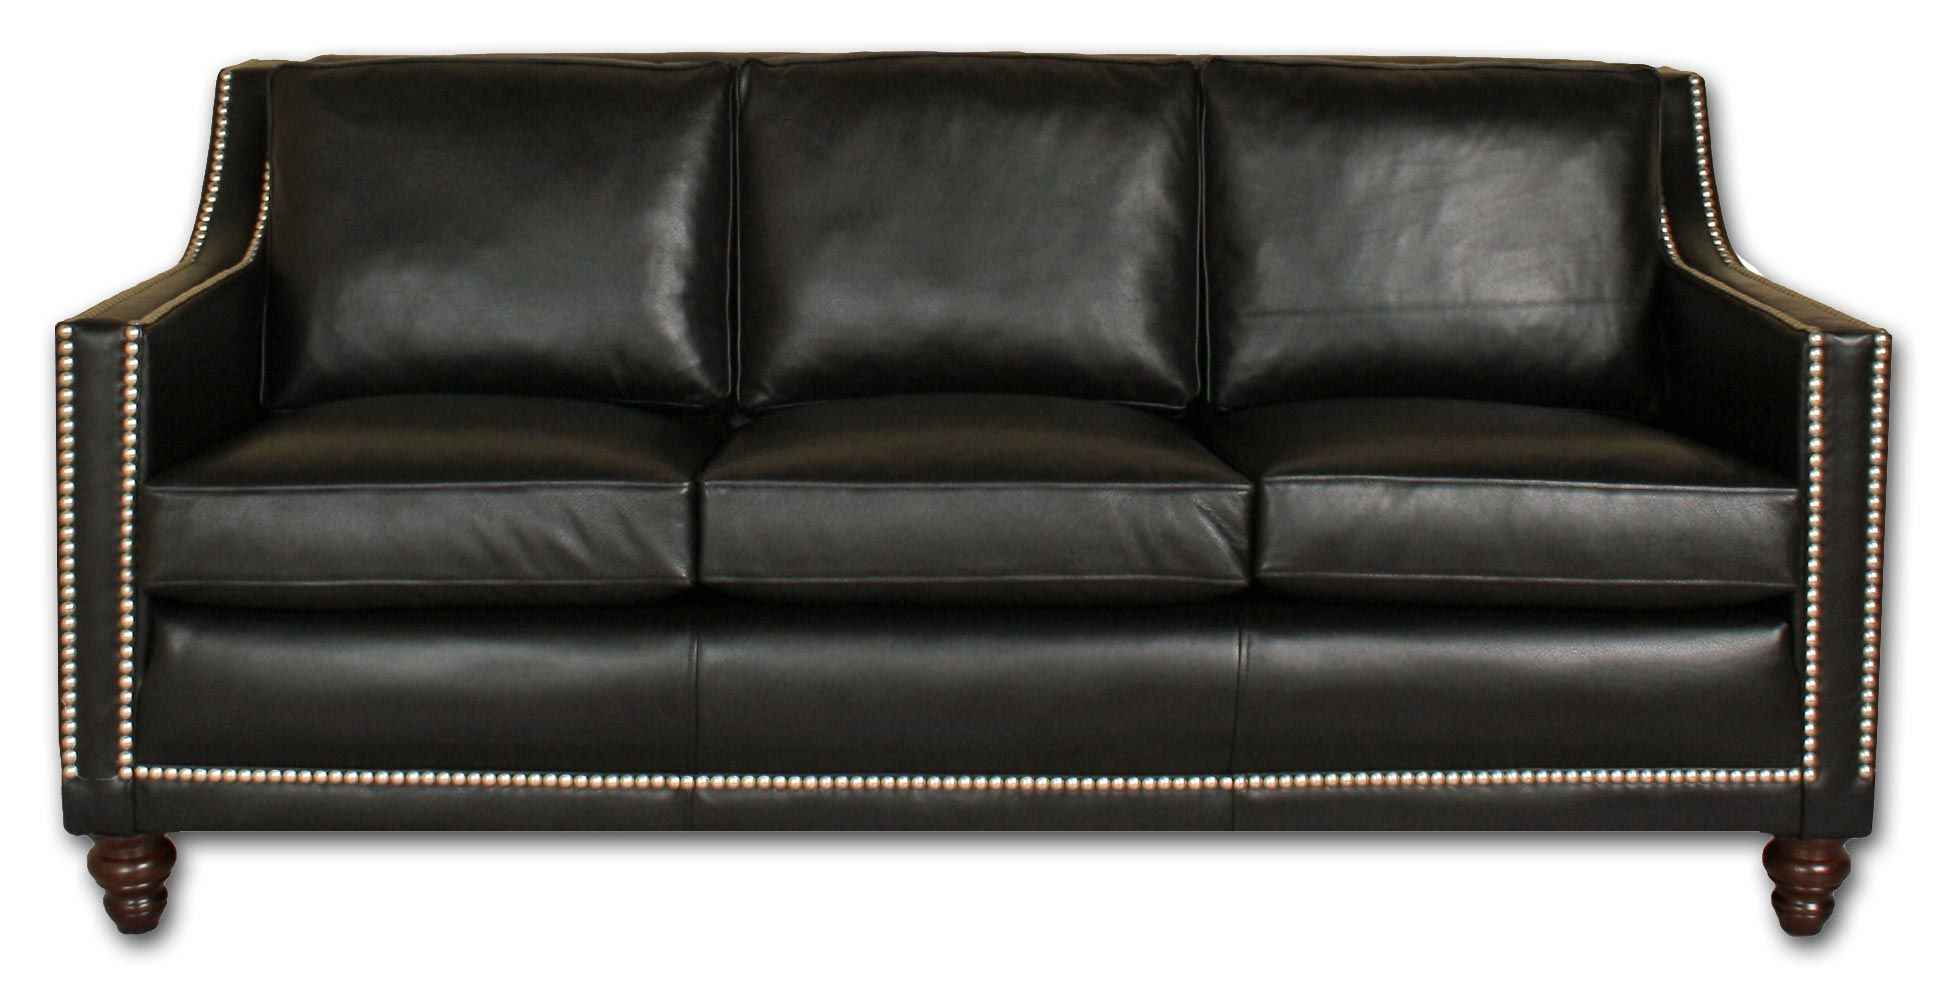 Awesome Sofa Creations Elegant 84 About Remodel Living Room Inspiration With